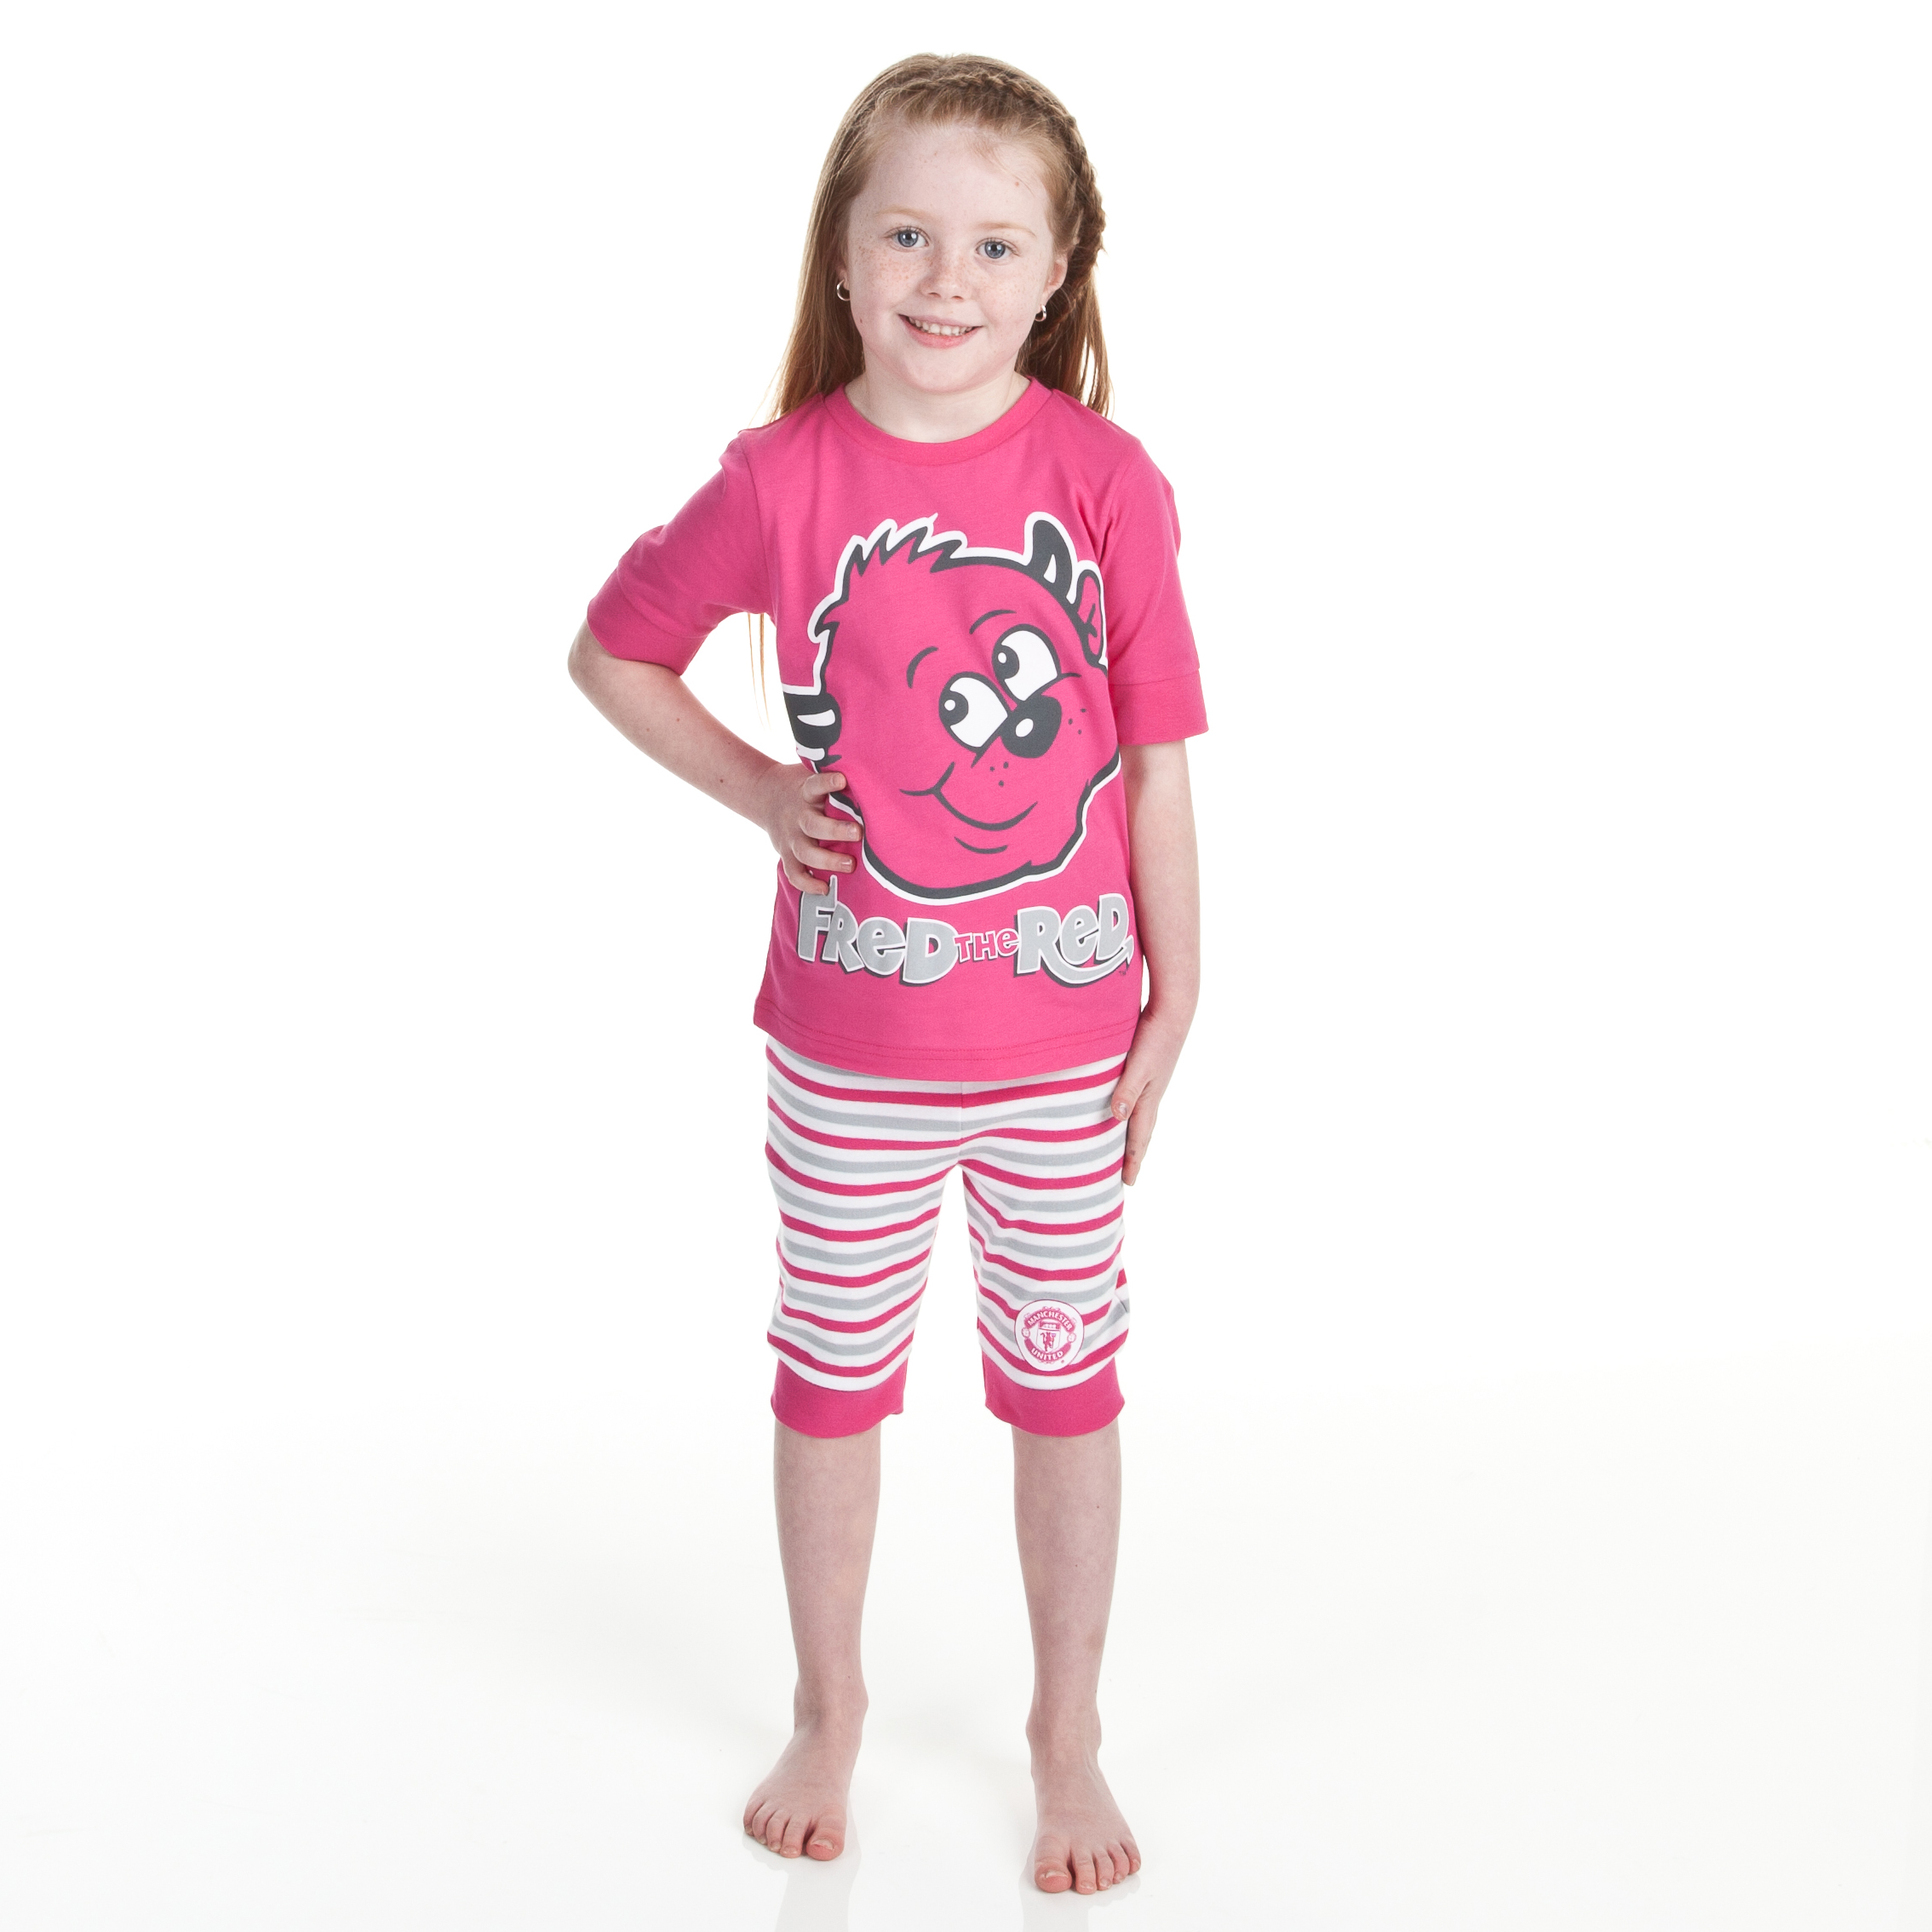 Manchester United Fred The Red Snuggle Fit Pyjamas - Cerise/Grey - Infant Girls